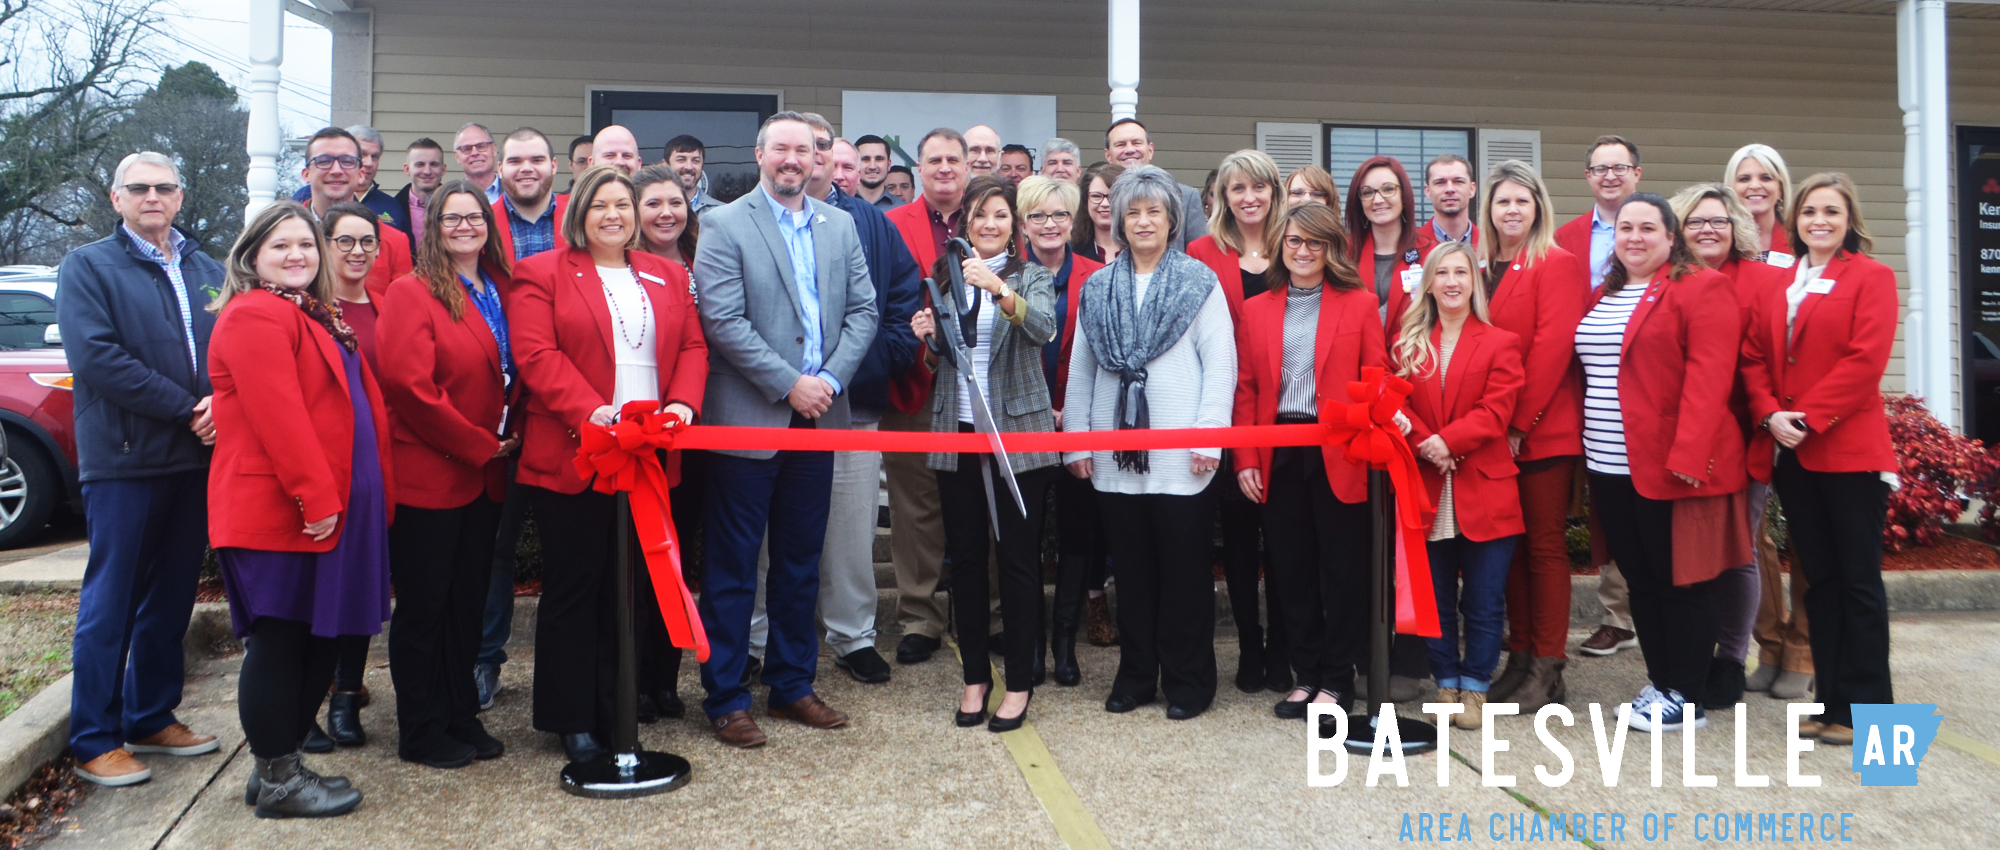 Batesville Area Chamber of Commerce